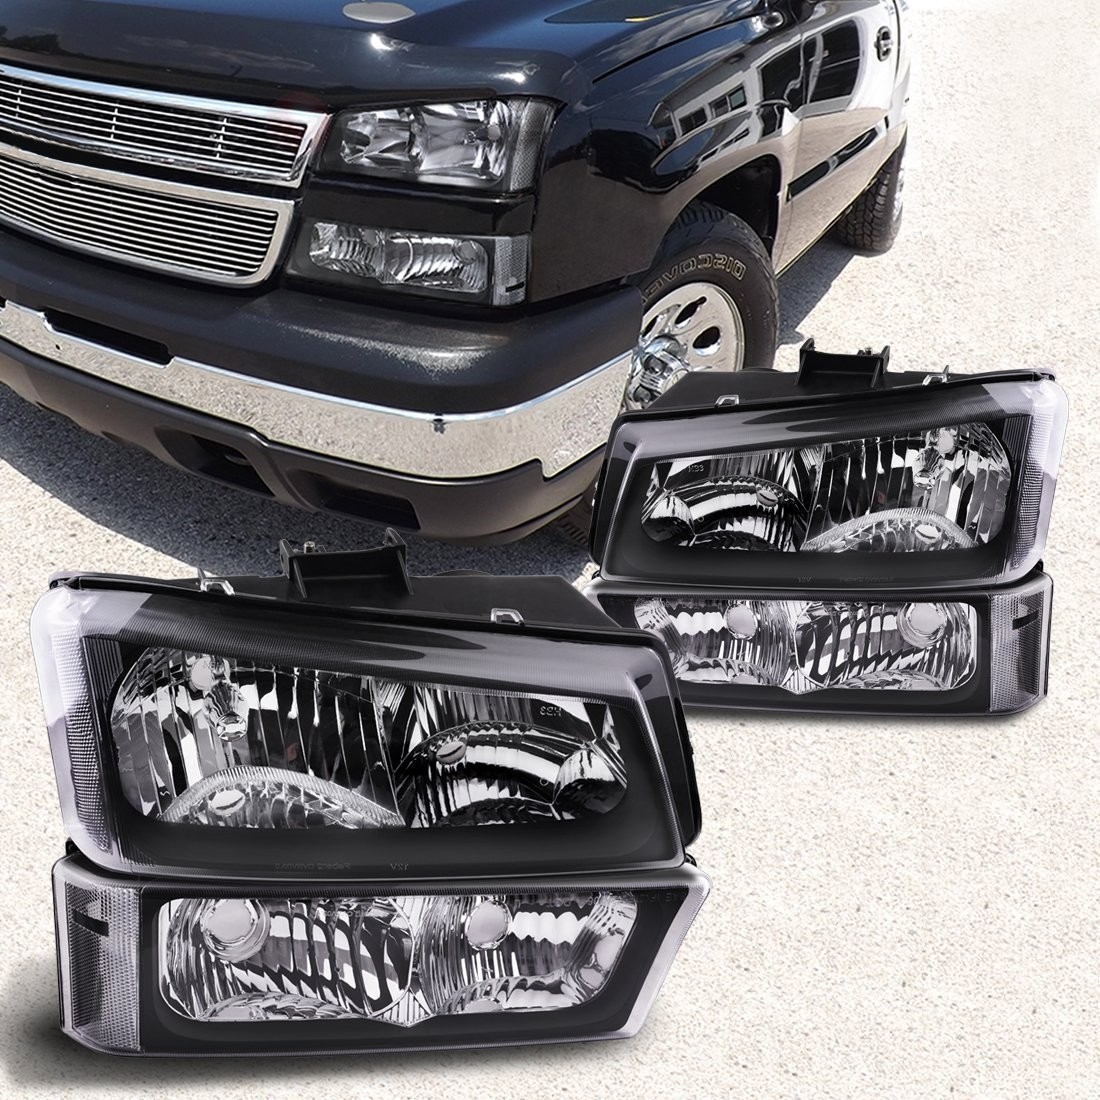 Headlight Assembly kit for 03 04 05 06 Chevy Avalanche / 03-07 Chevrolet Silverado 1500HD / 03-06 Chevrolet Silverado 2500HD